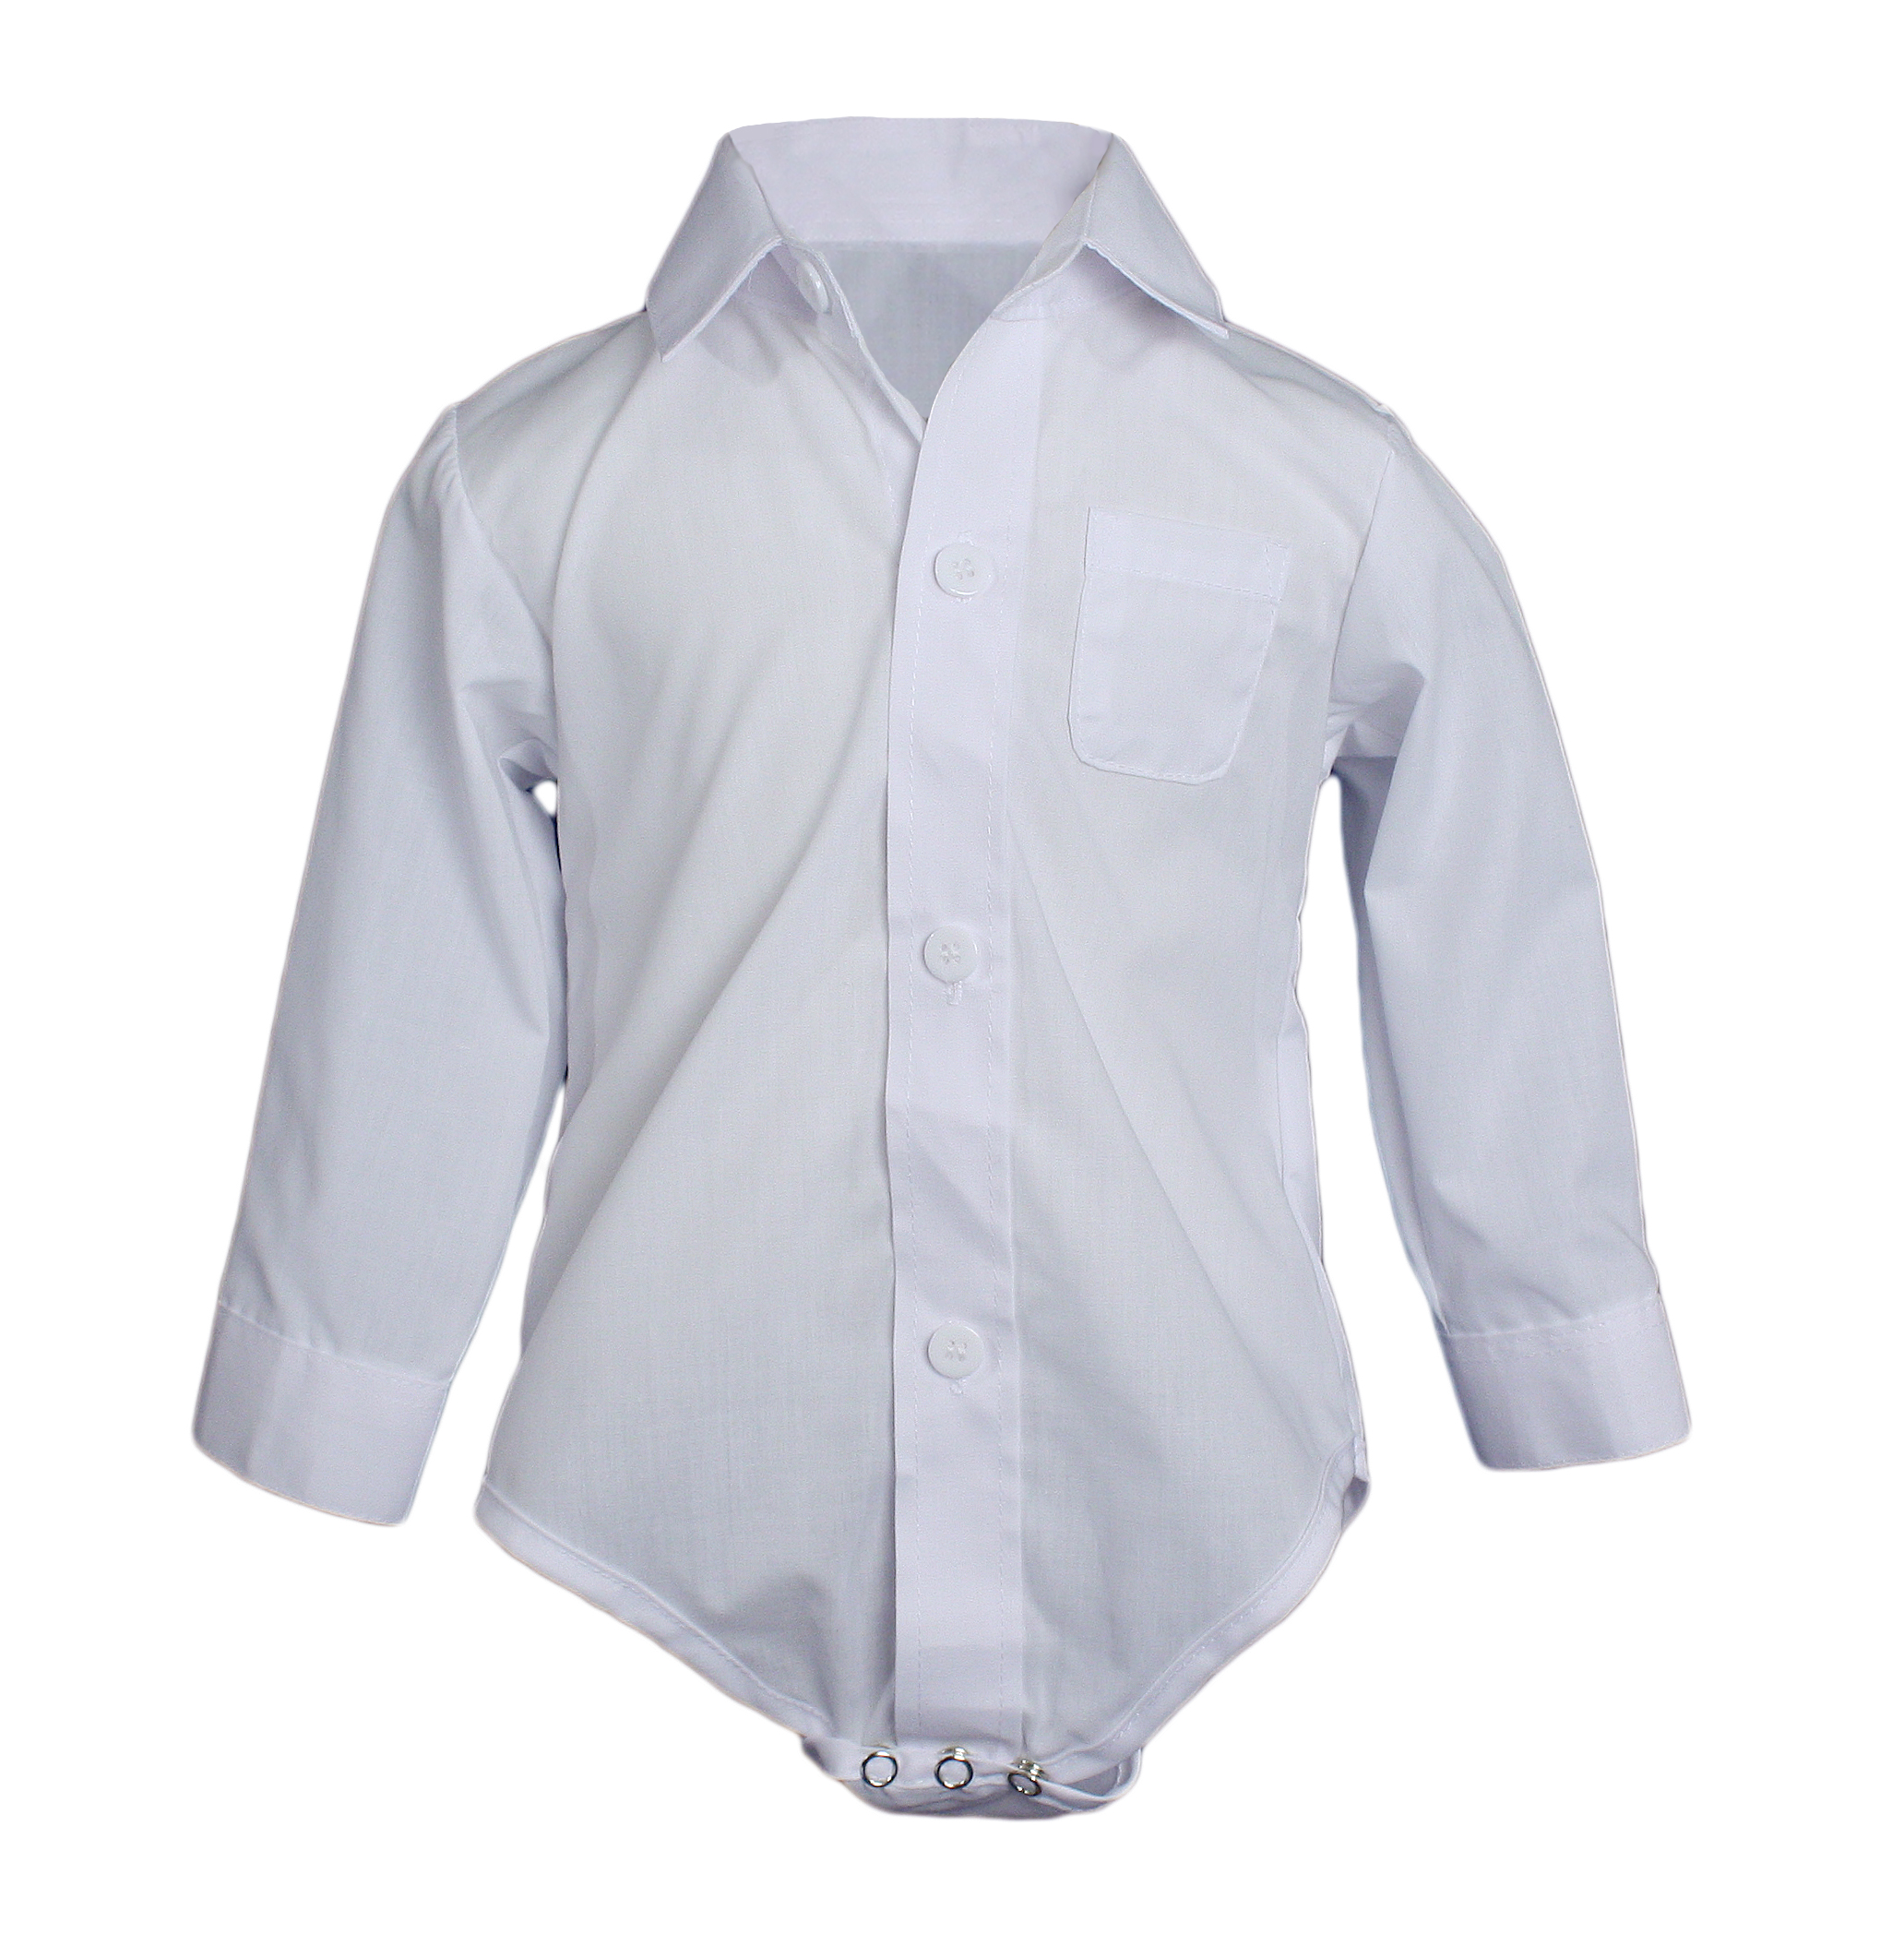 Little Things Mean A Lot Baby Boys Poly Cotton Button Up White